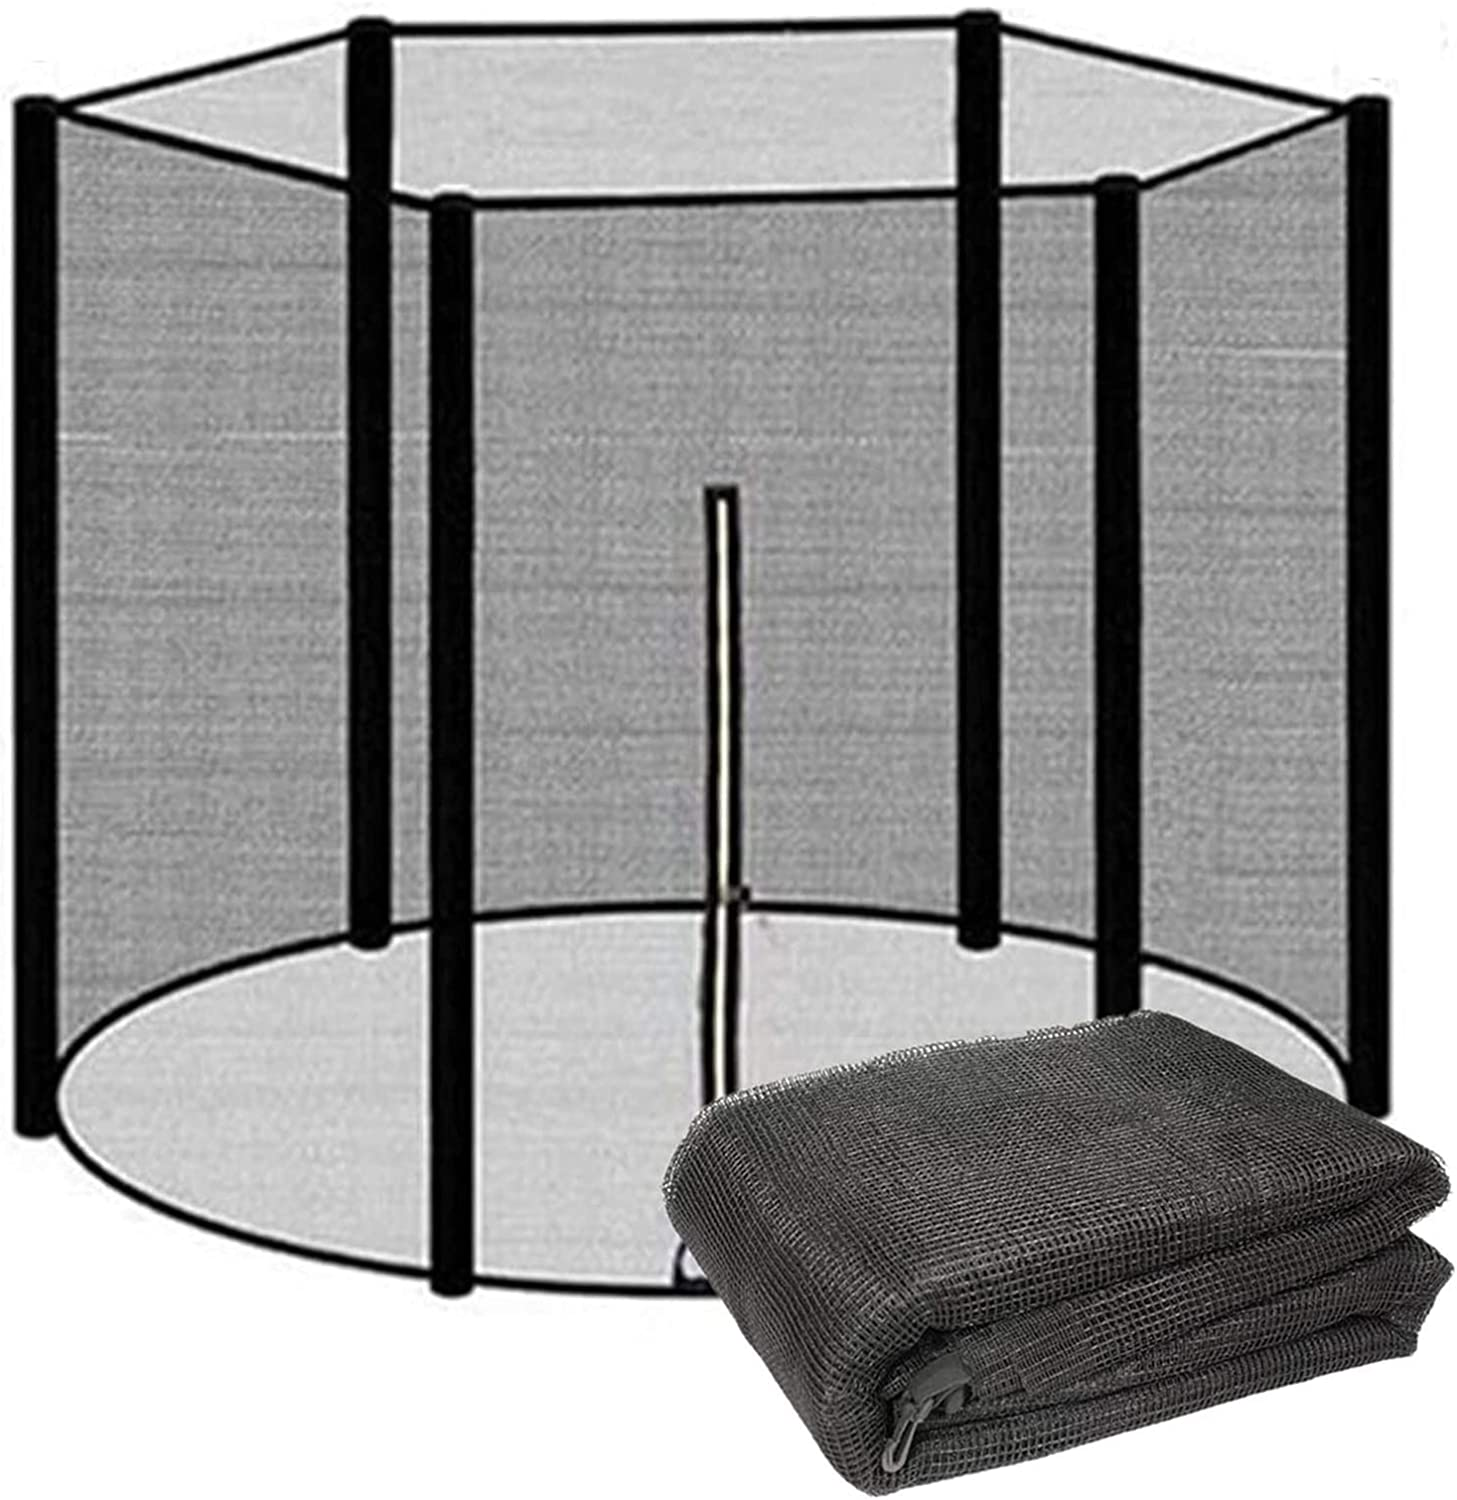 Max 71% OFF joyvio Trampoline Spare for Garden Cheap mail order specialty store Parts